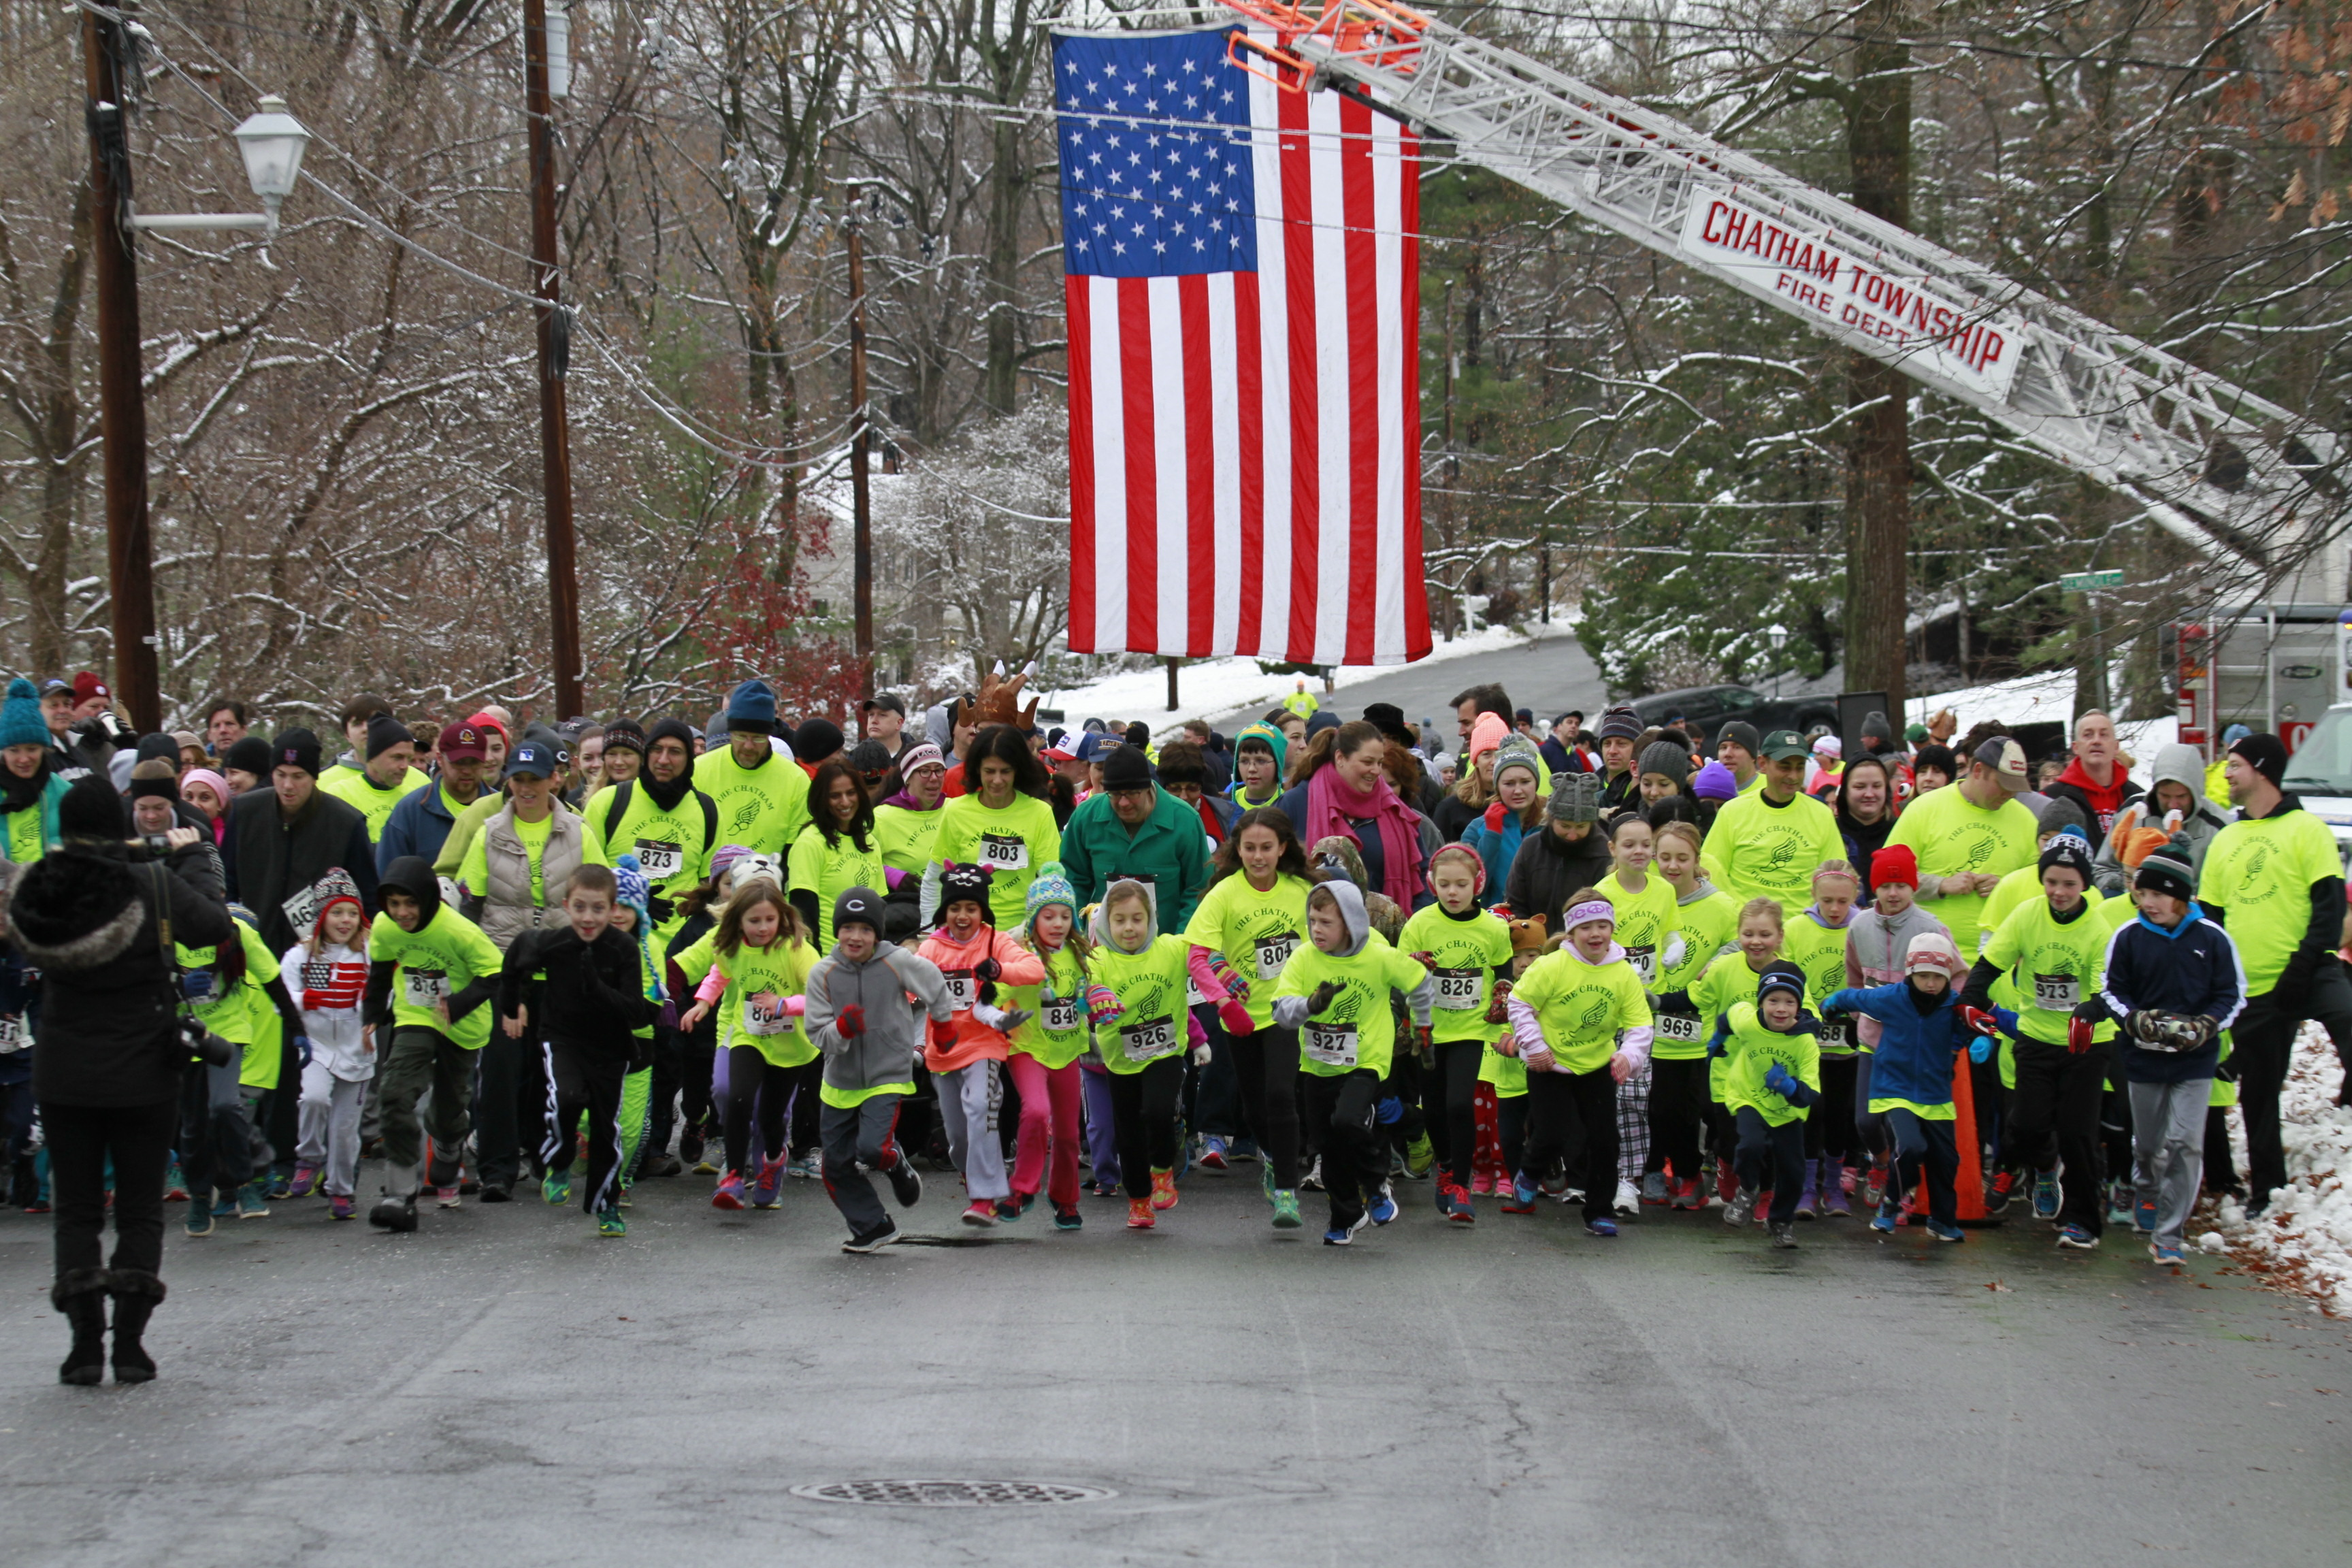 Chatham's 6th Annual Turkey Trot Raises $19,000 for Fire Dept., Diabetes